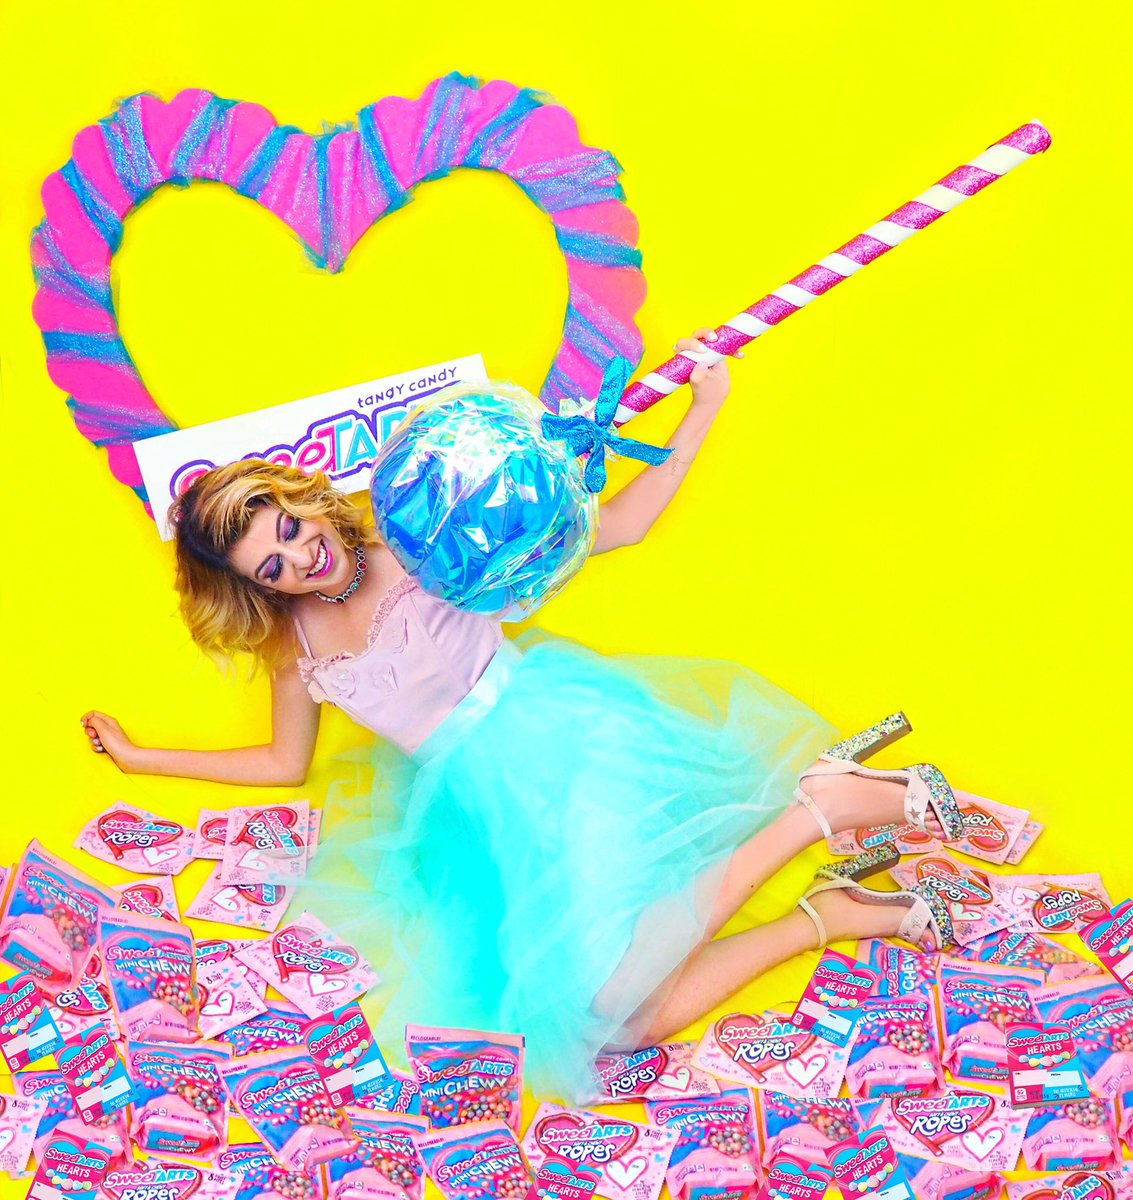 Starting off February STRONG with @SweeTARTSCandy in my new #ValentinesDay series inspired by their  sweet treats! Click here to see the full shoot! https://t.co/h2KzAG5N9V #SweeTARTS #candylaine #ad https://t.co/z5cerSzjIB